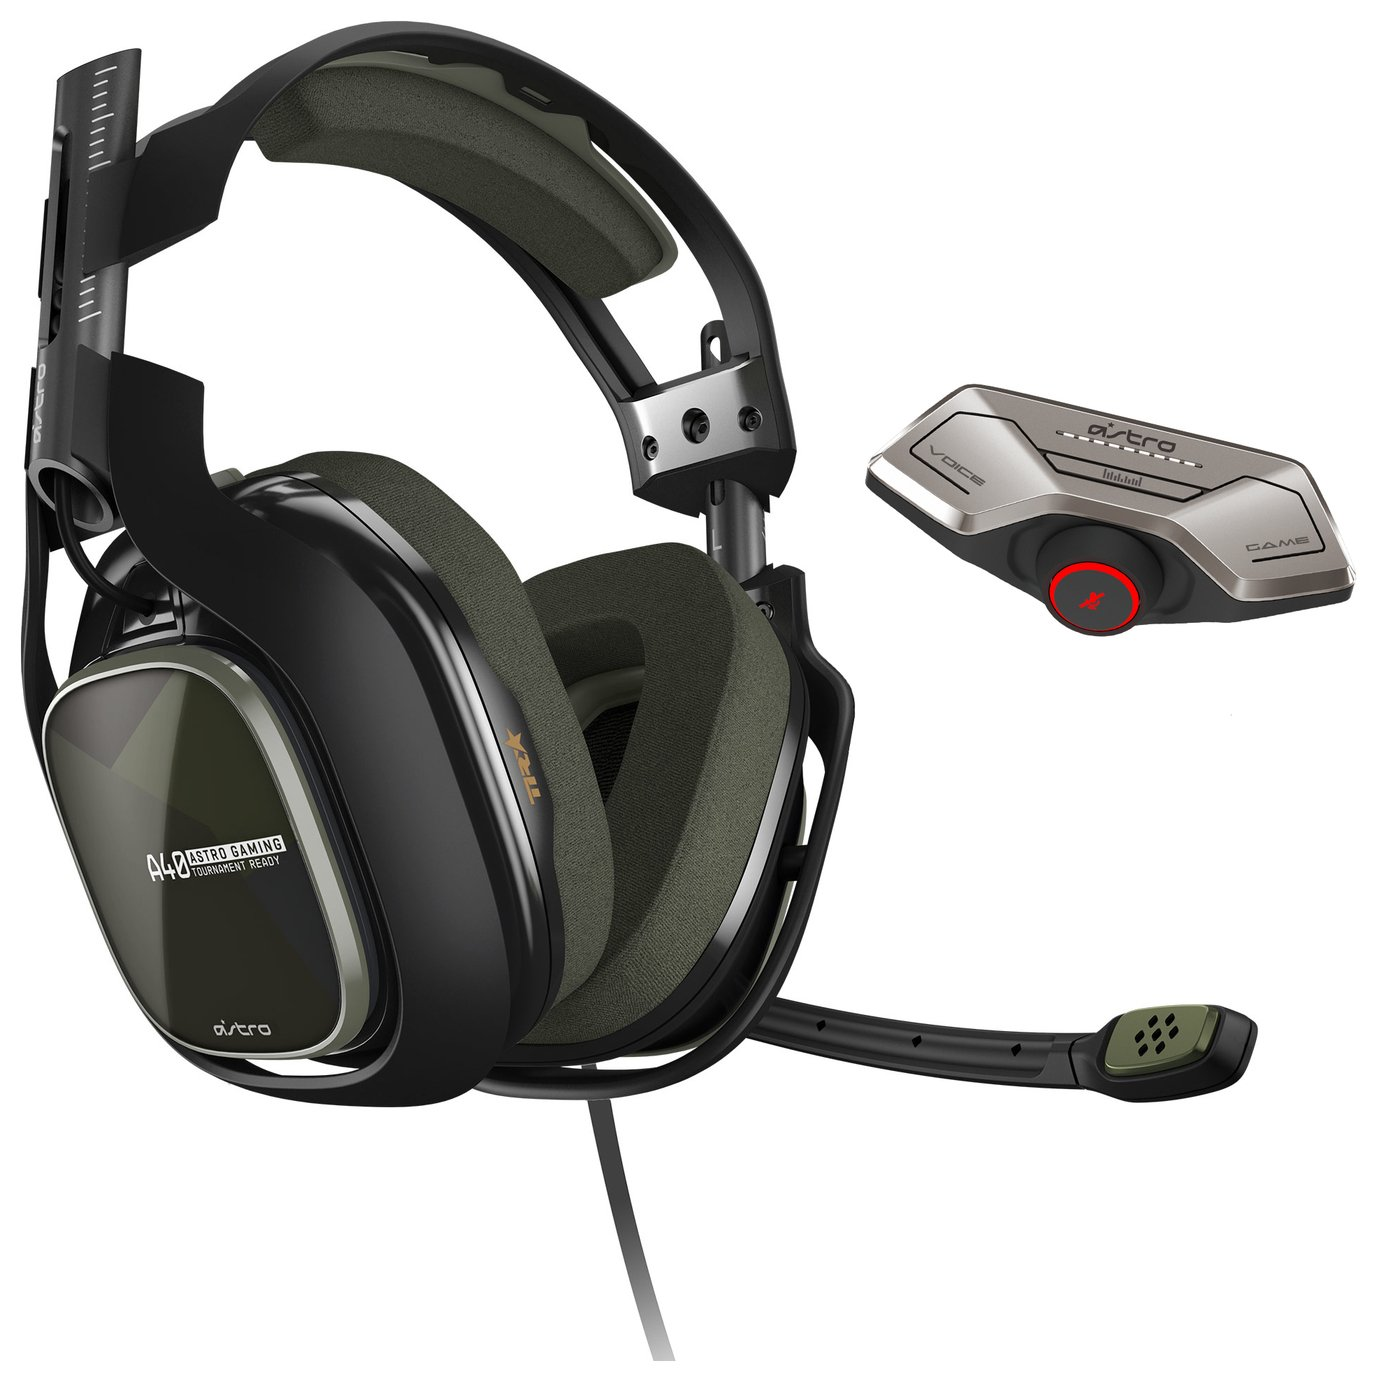 Image of Astro A40 TR Headset and MixAmp M80 for Xbox One - Green.